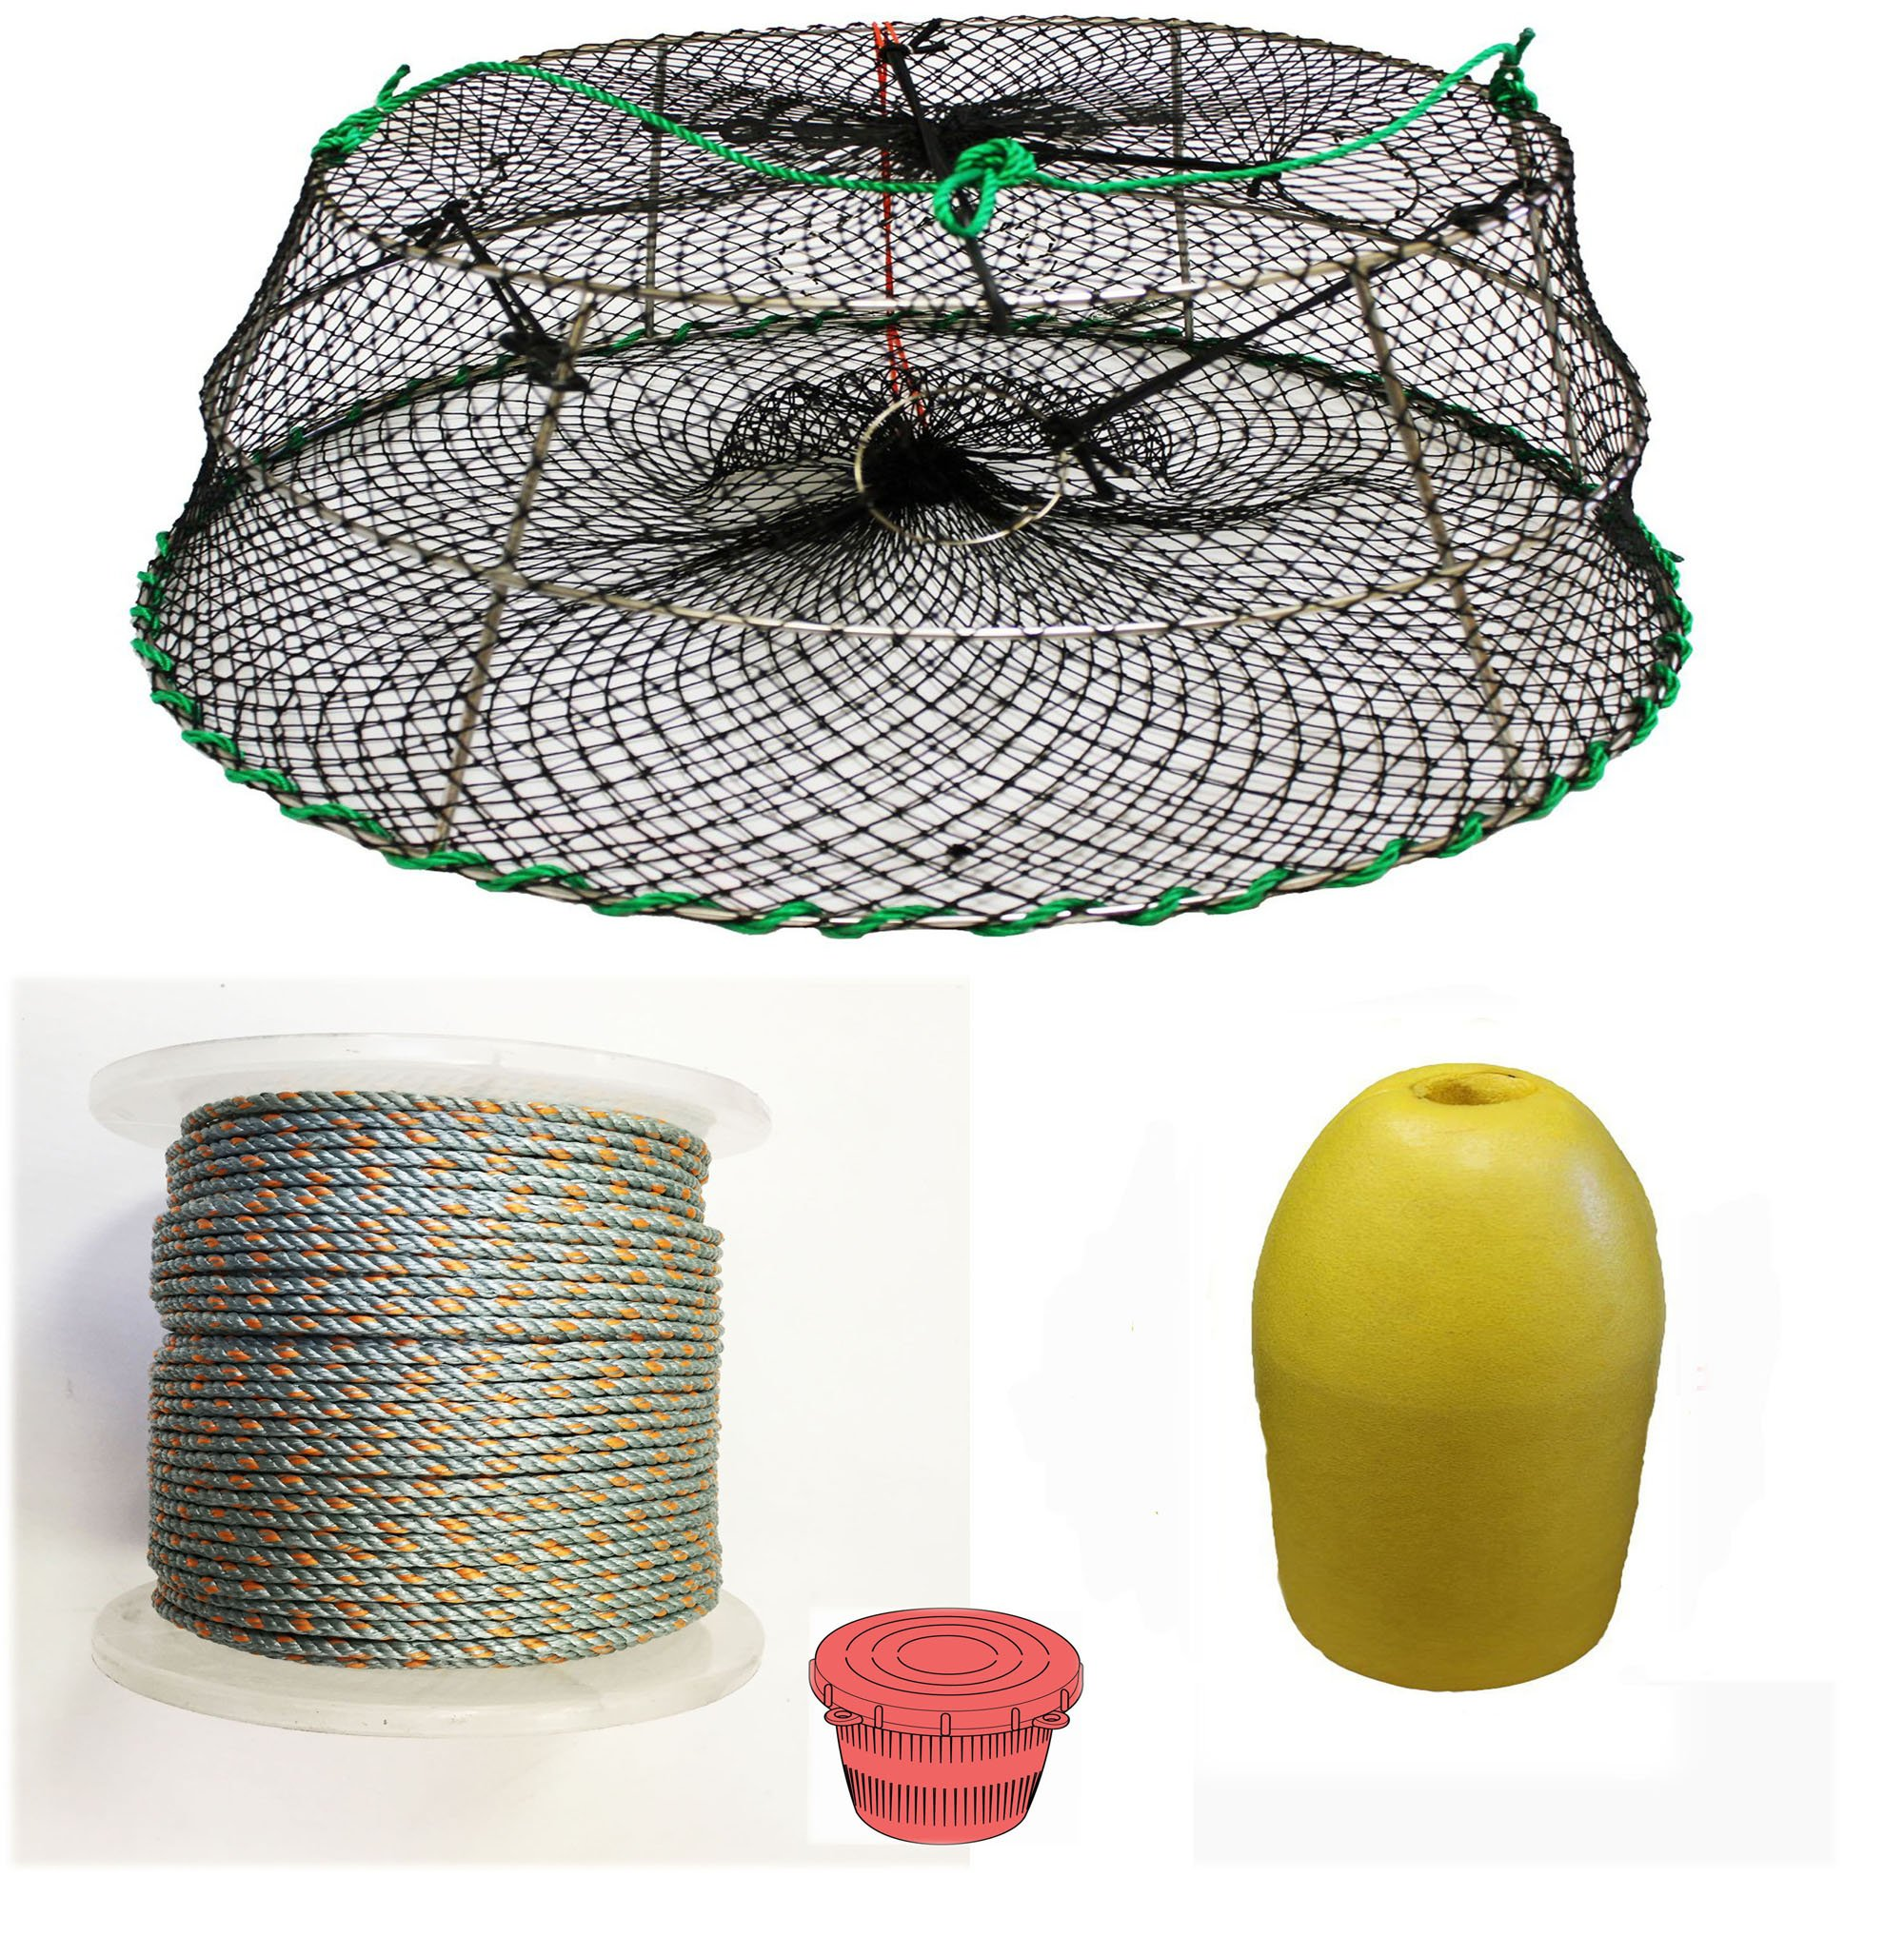 KUFA Sports Tower Style Prawn trap with 400' rope, Yellow float and Vented Bait Jar combo (CT77+PAL1)